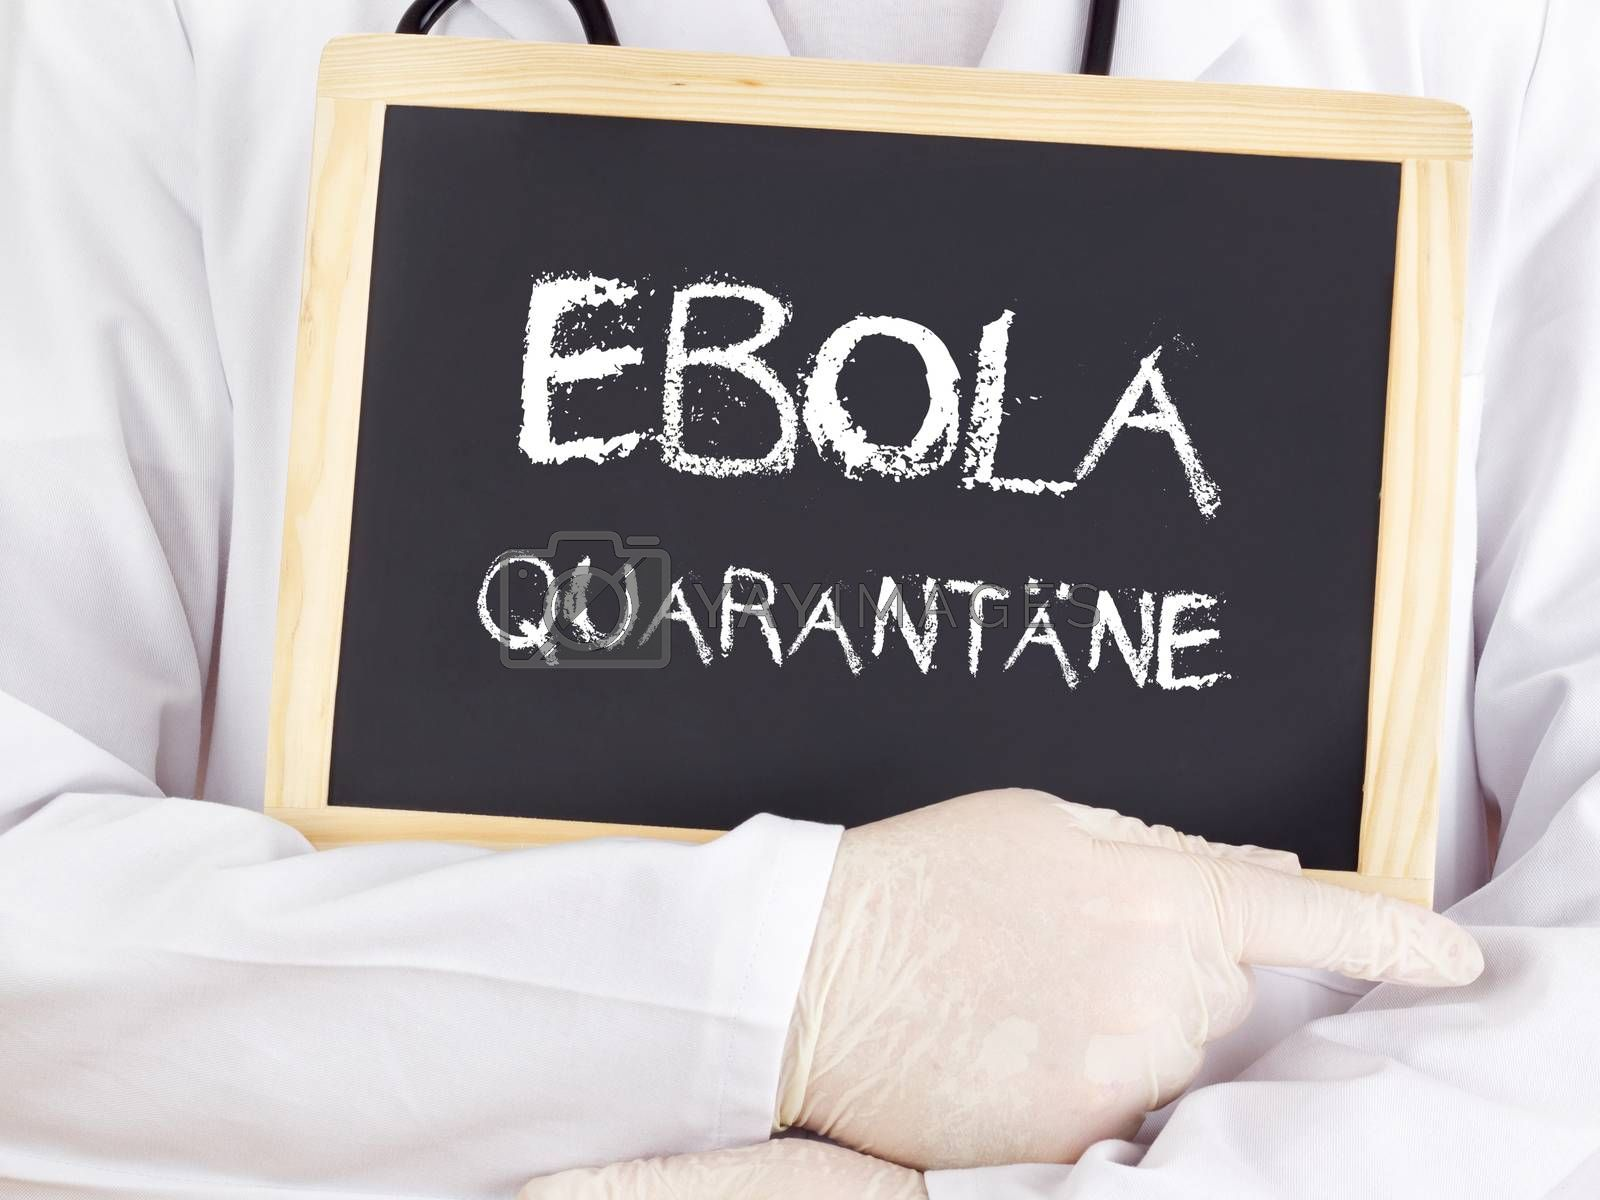 Doctor shows information: Ebola quarantine in german